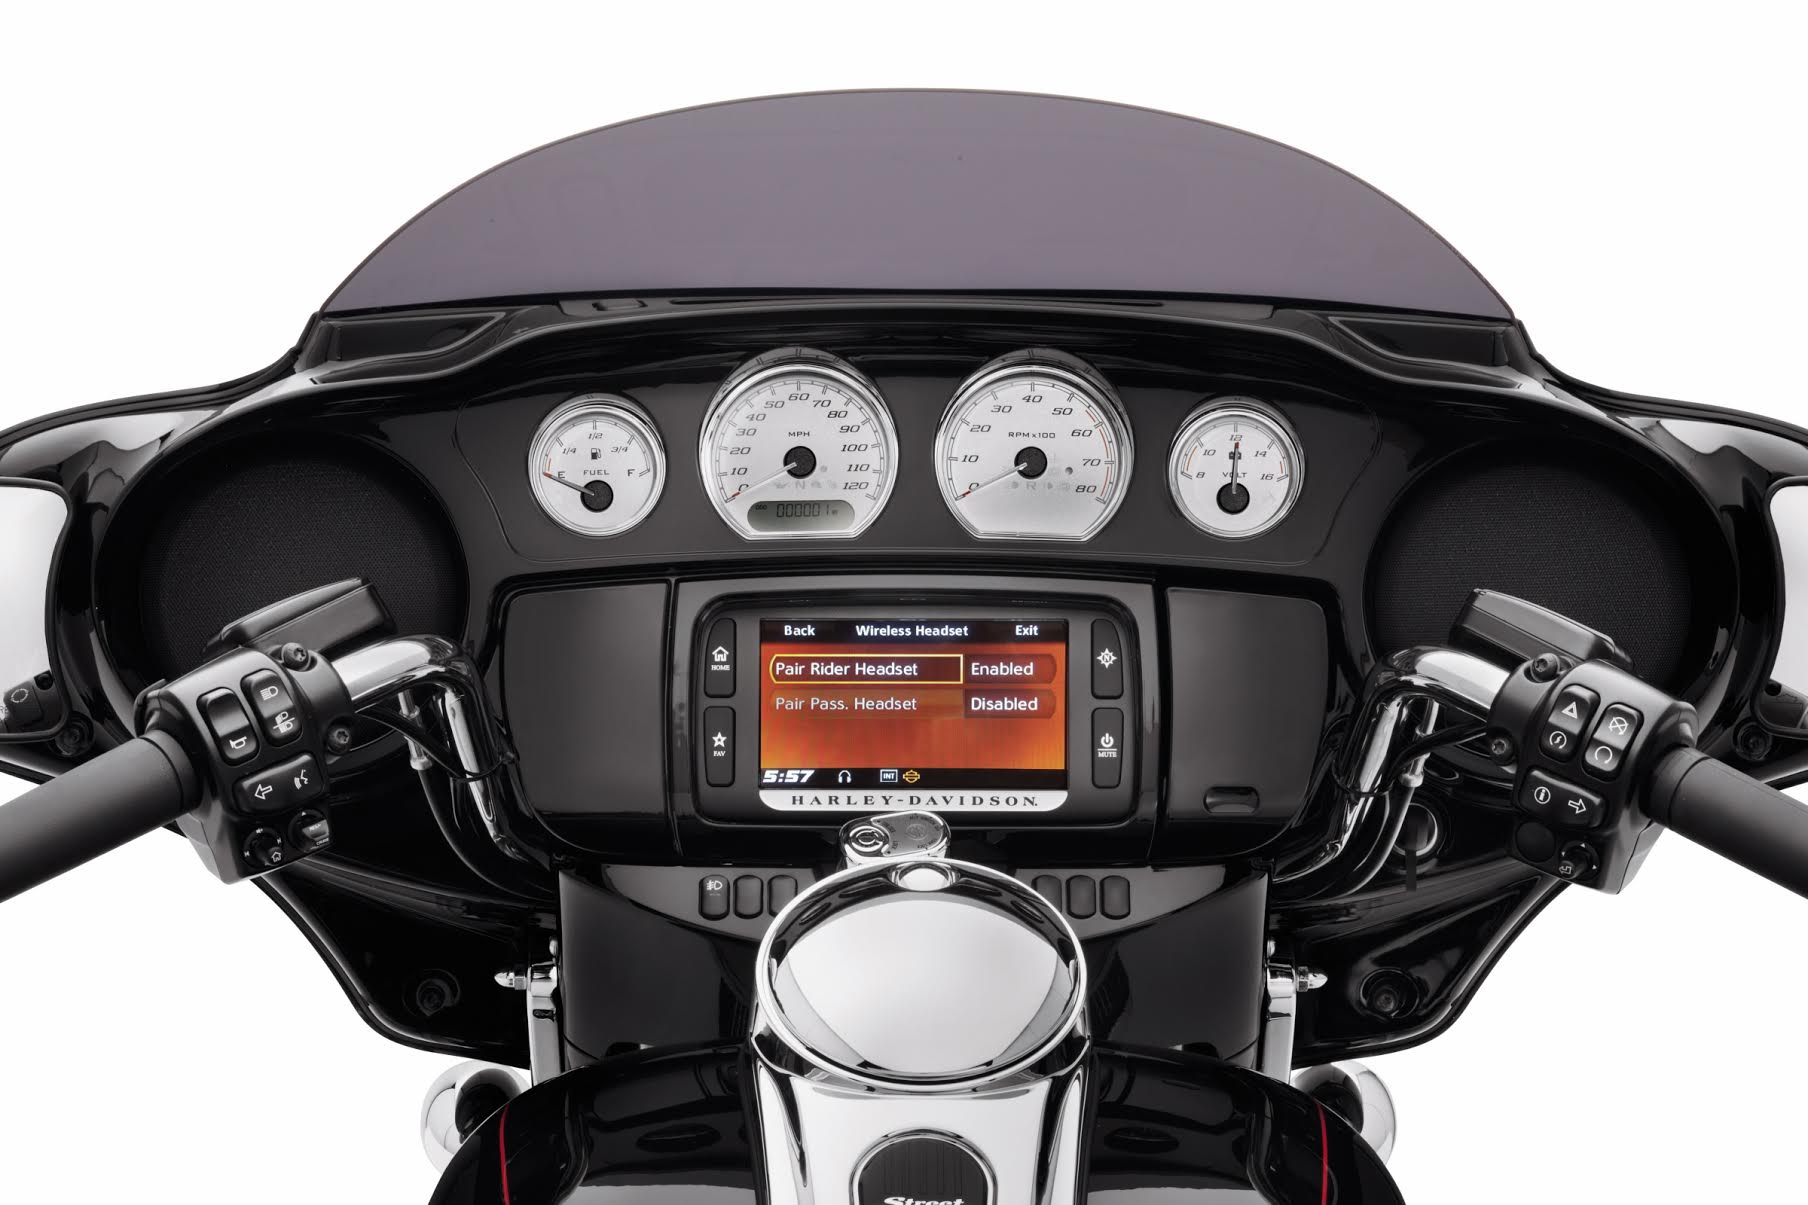 CUT THE CORD: NEW HARLEY-DAVIDSON MODULE ALLOWS RIDERS TO CONNECT WIRELESSLY